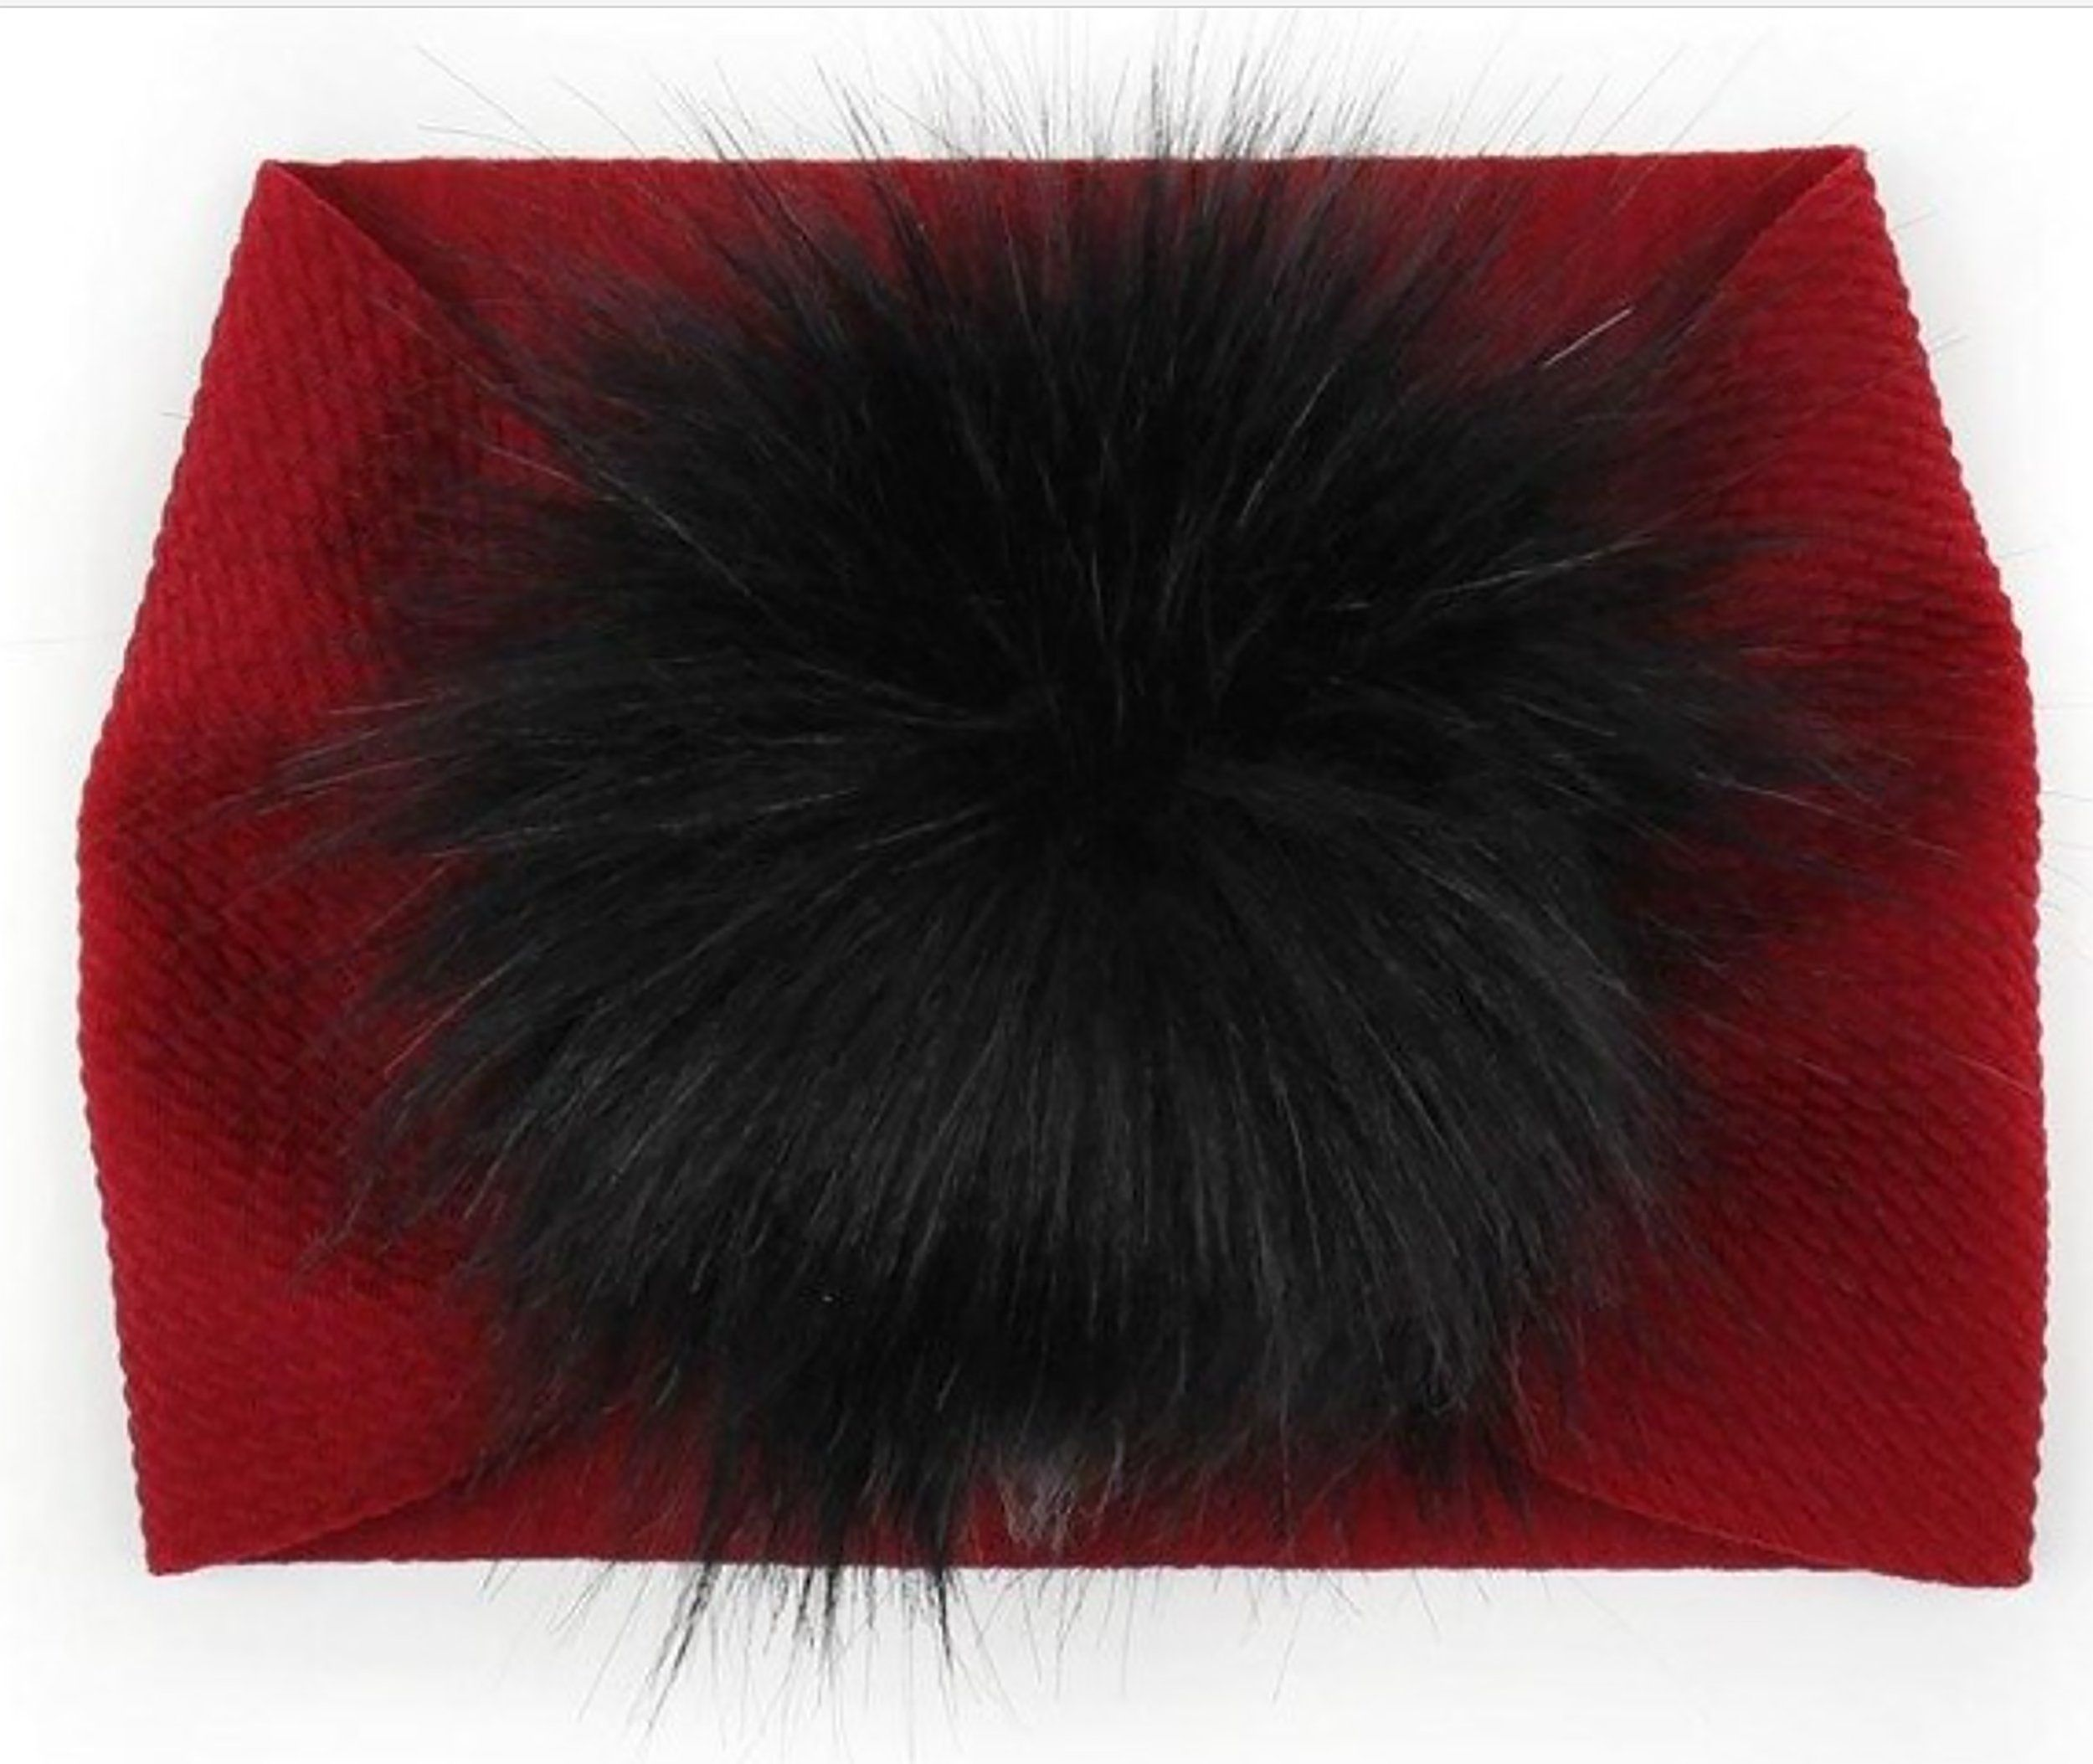 Faux-Fur Puff Headbands - Toddler / Maroon with Black & White Fur